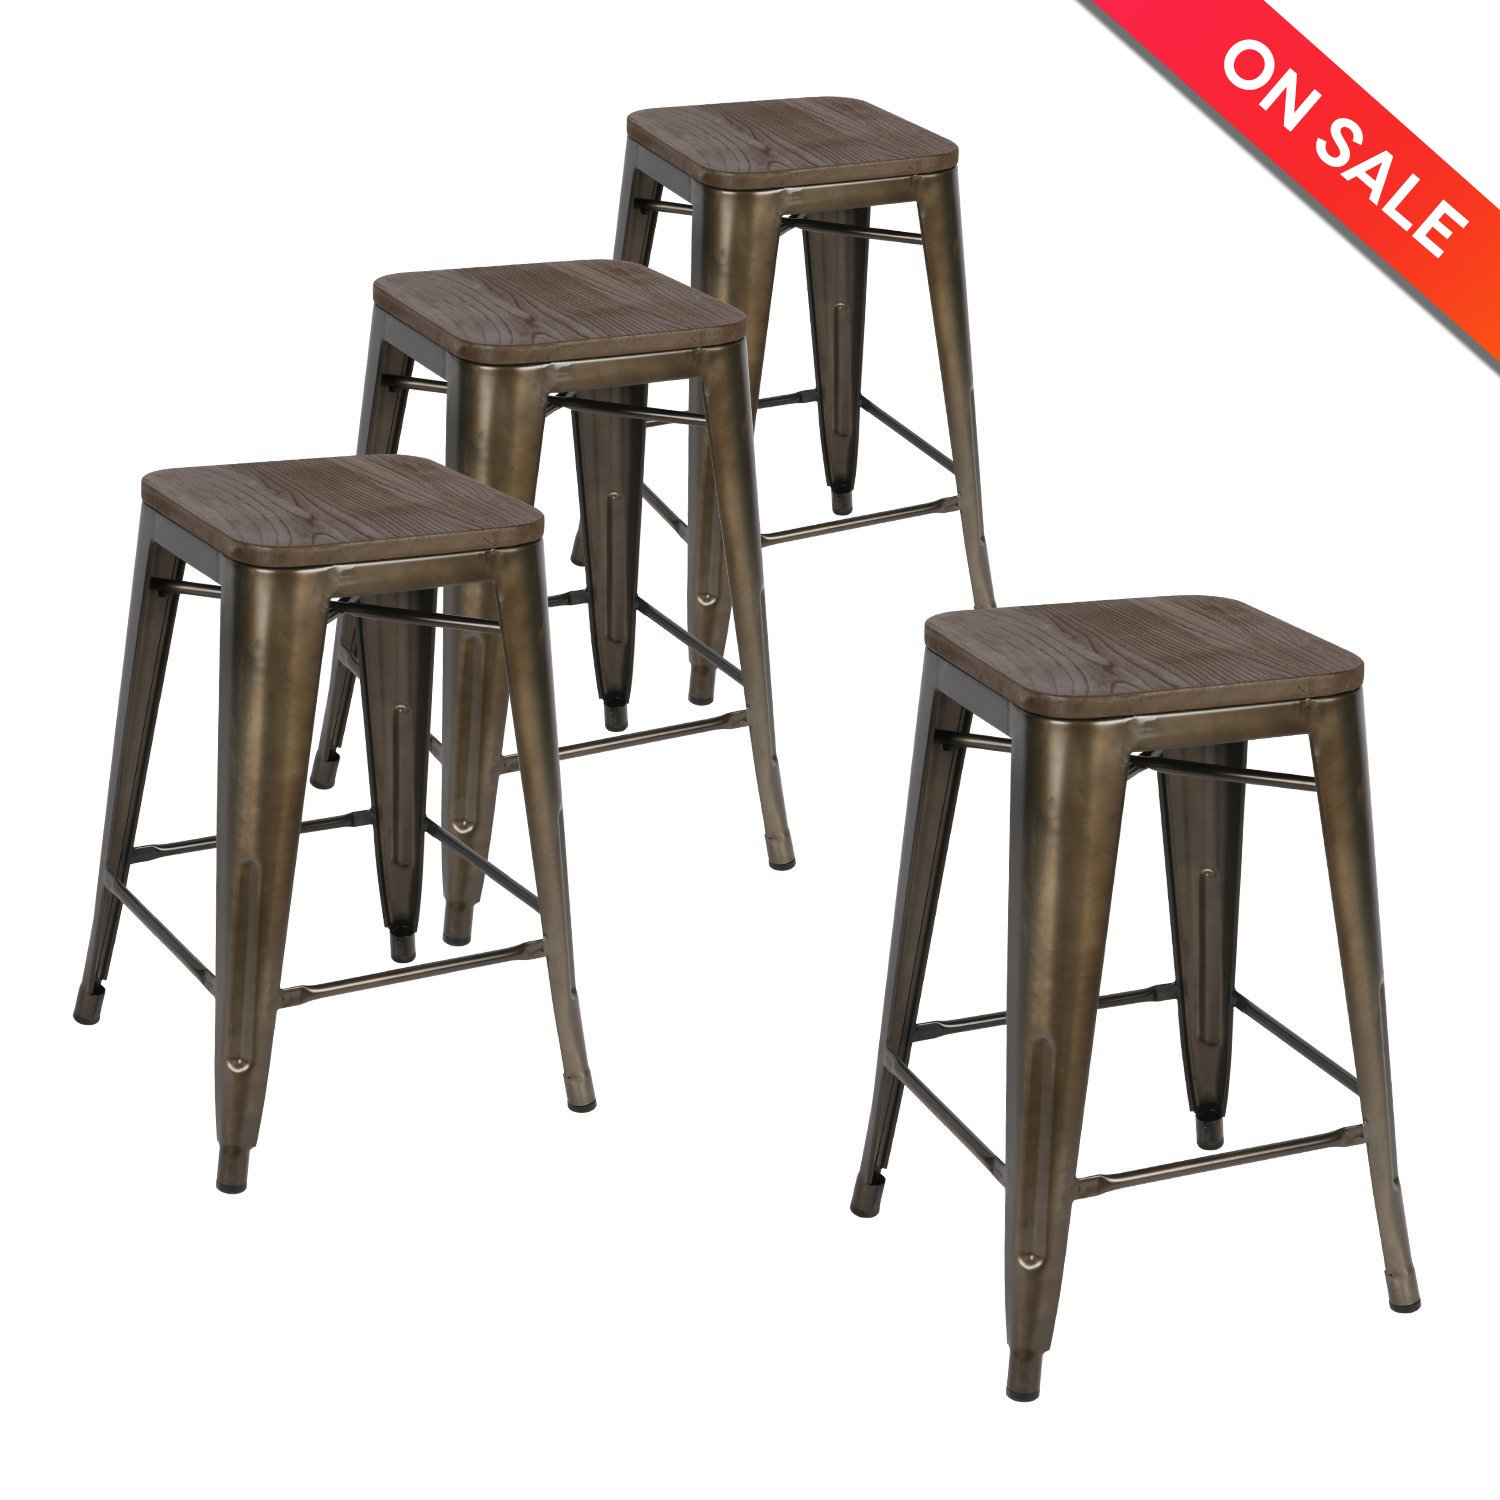 stools silver and design magnificent black furniture brown kitchen vintage polished back rustic coated metal ideas leather drafting industrial square plus as style with designer grey bar well upholstered stool backs